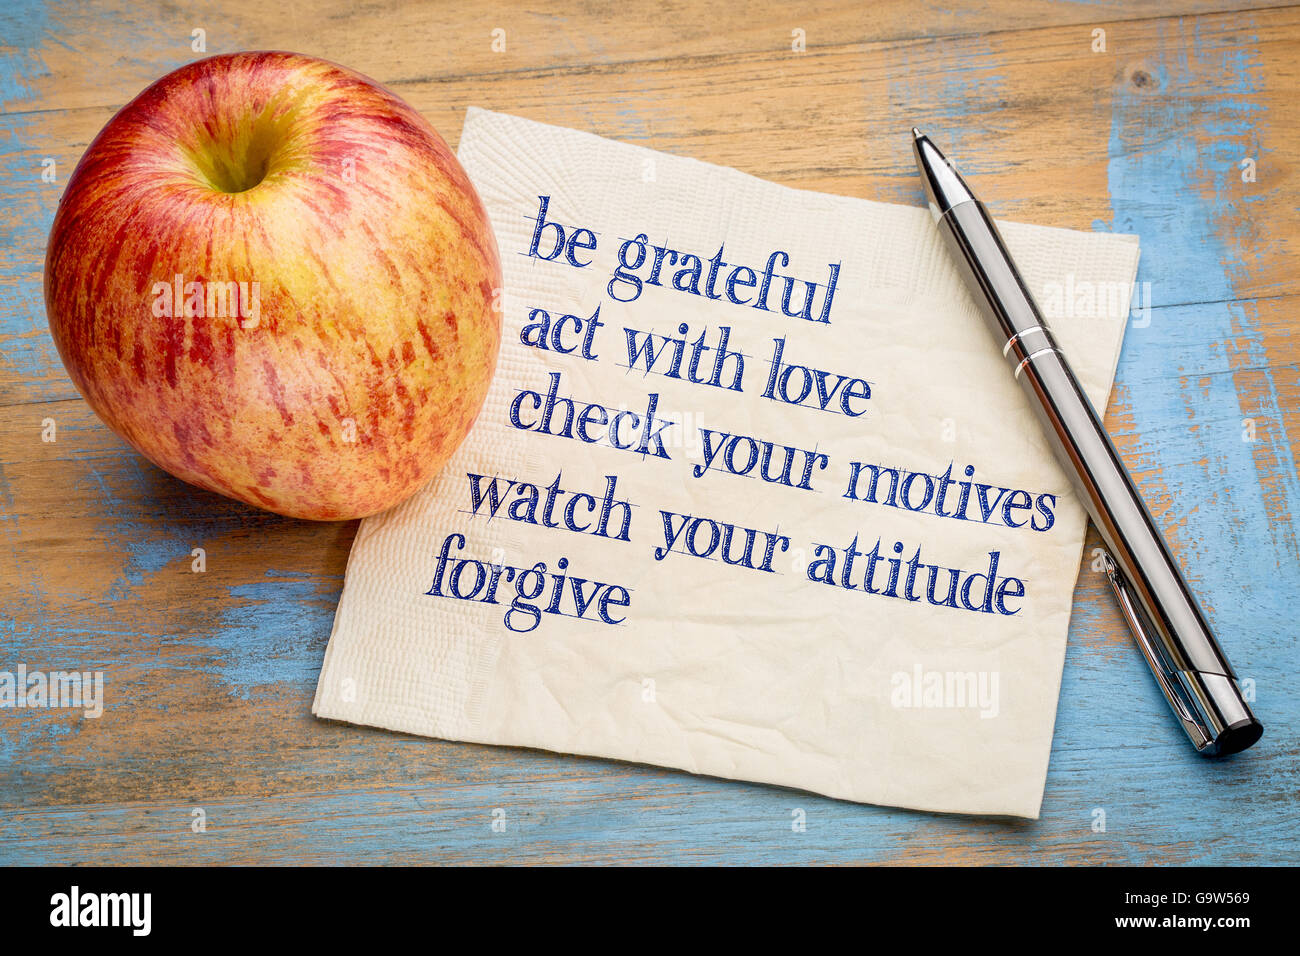 be grateful and other inspirational phrases - handwriting on a napkin with a fresh apple - Stock Image